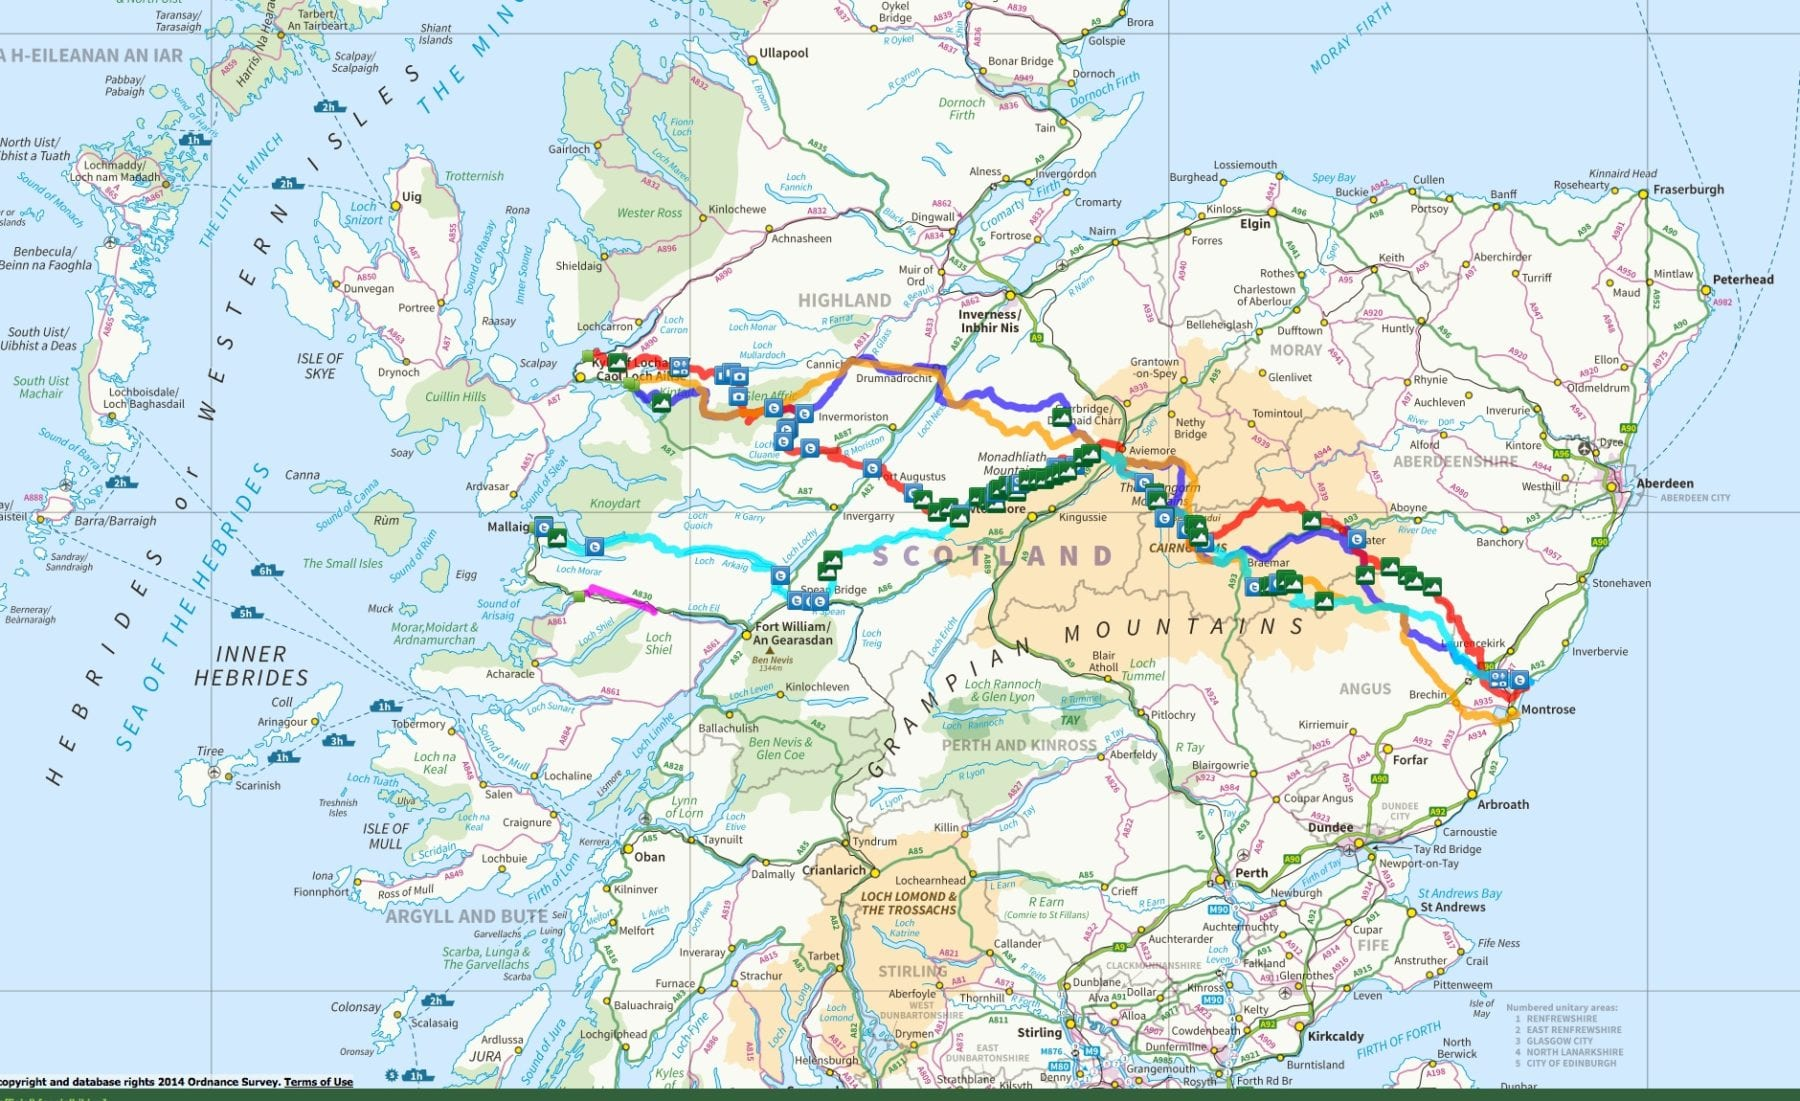 Example of Participant Created Routes across Scotland